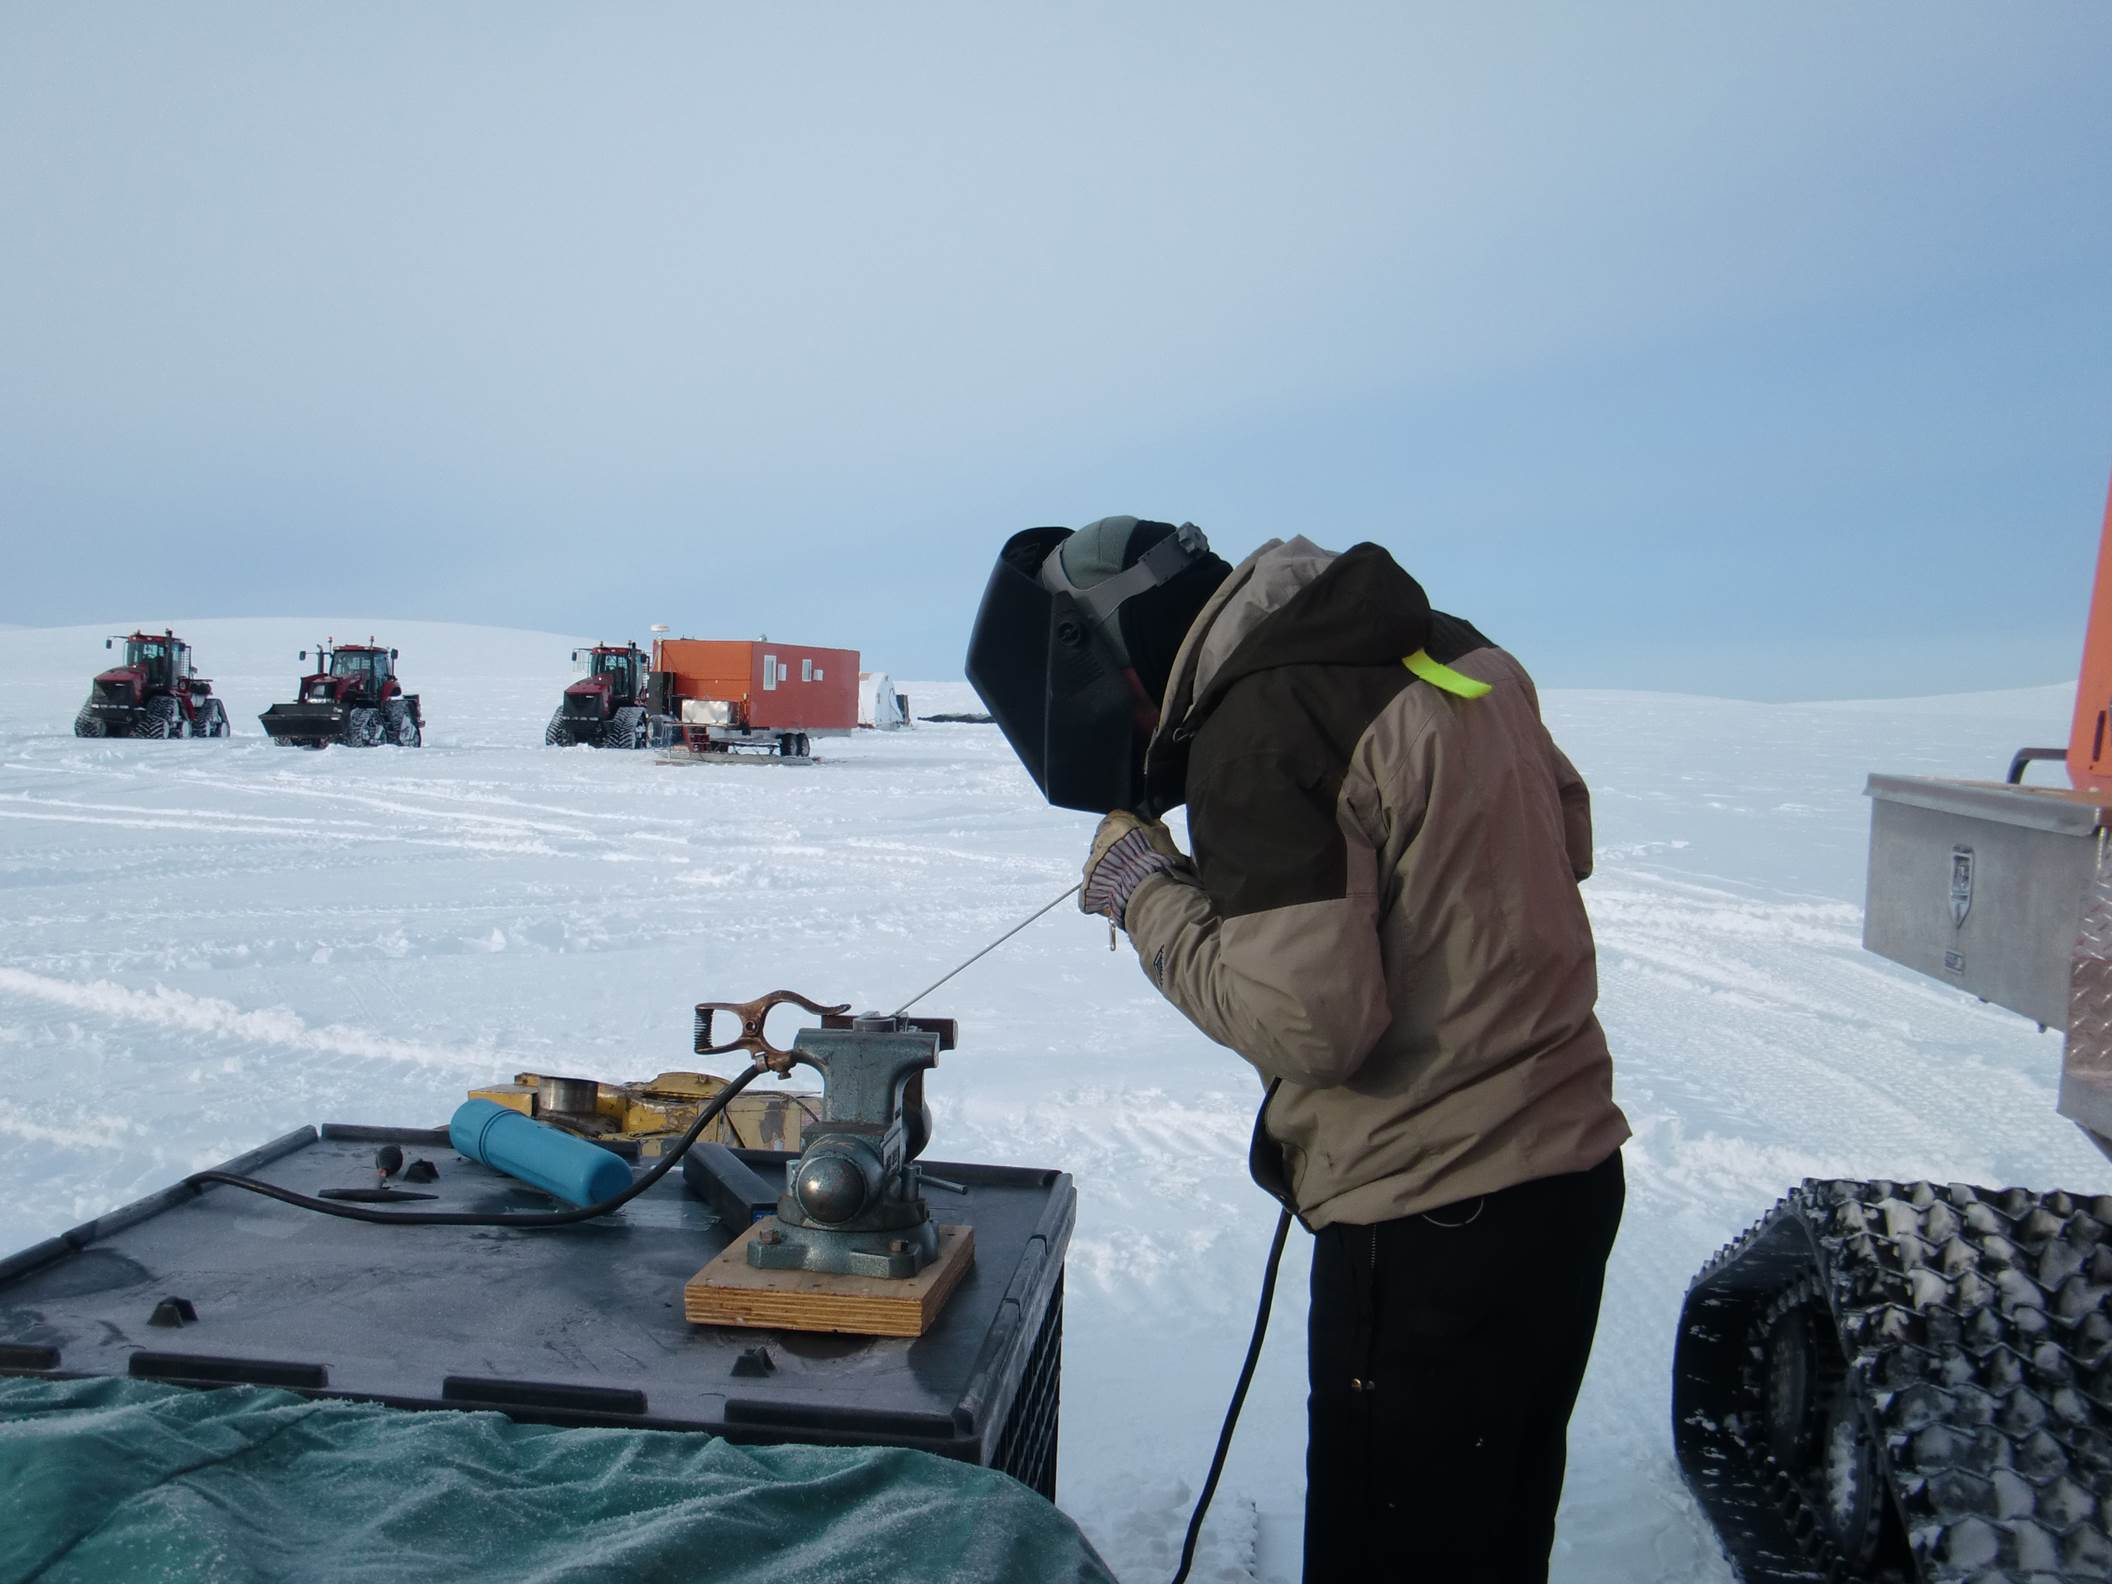 After dealing with a series of mechanical issues, the GrIT team has resolved the majority and is making great progress. The team is resourceful, equipped, and experienced. In this picture from 2012, Robin Davies prepares for some field welding out on the ice sheet. Photo: Shep Vail